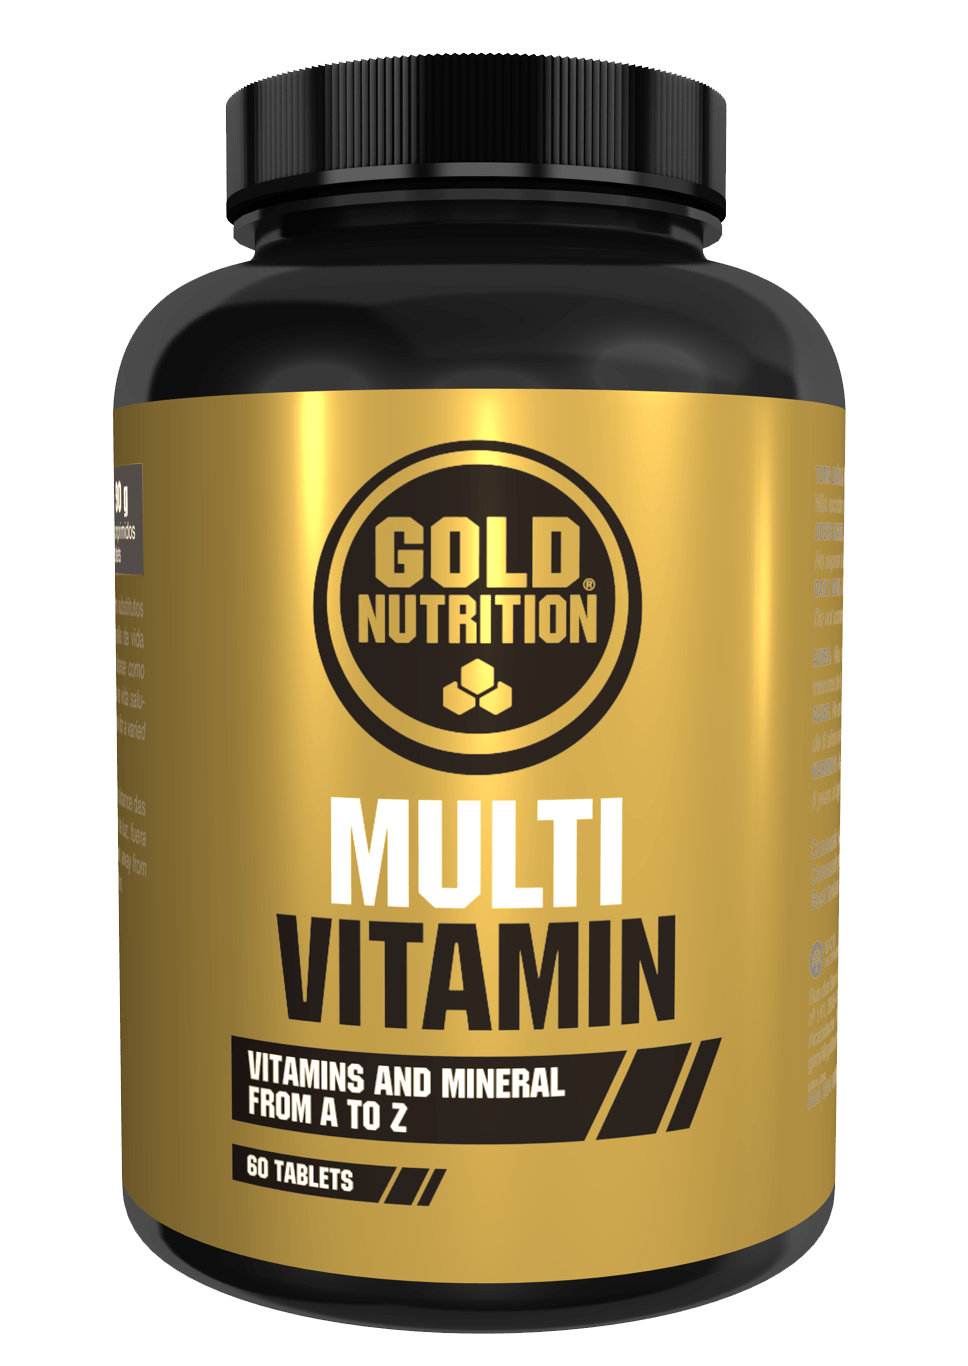 Every day Multivitamin - 60 caps - GoldNutrition Hong Kong